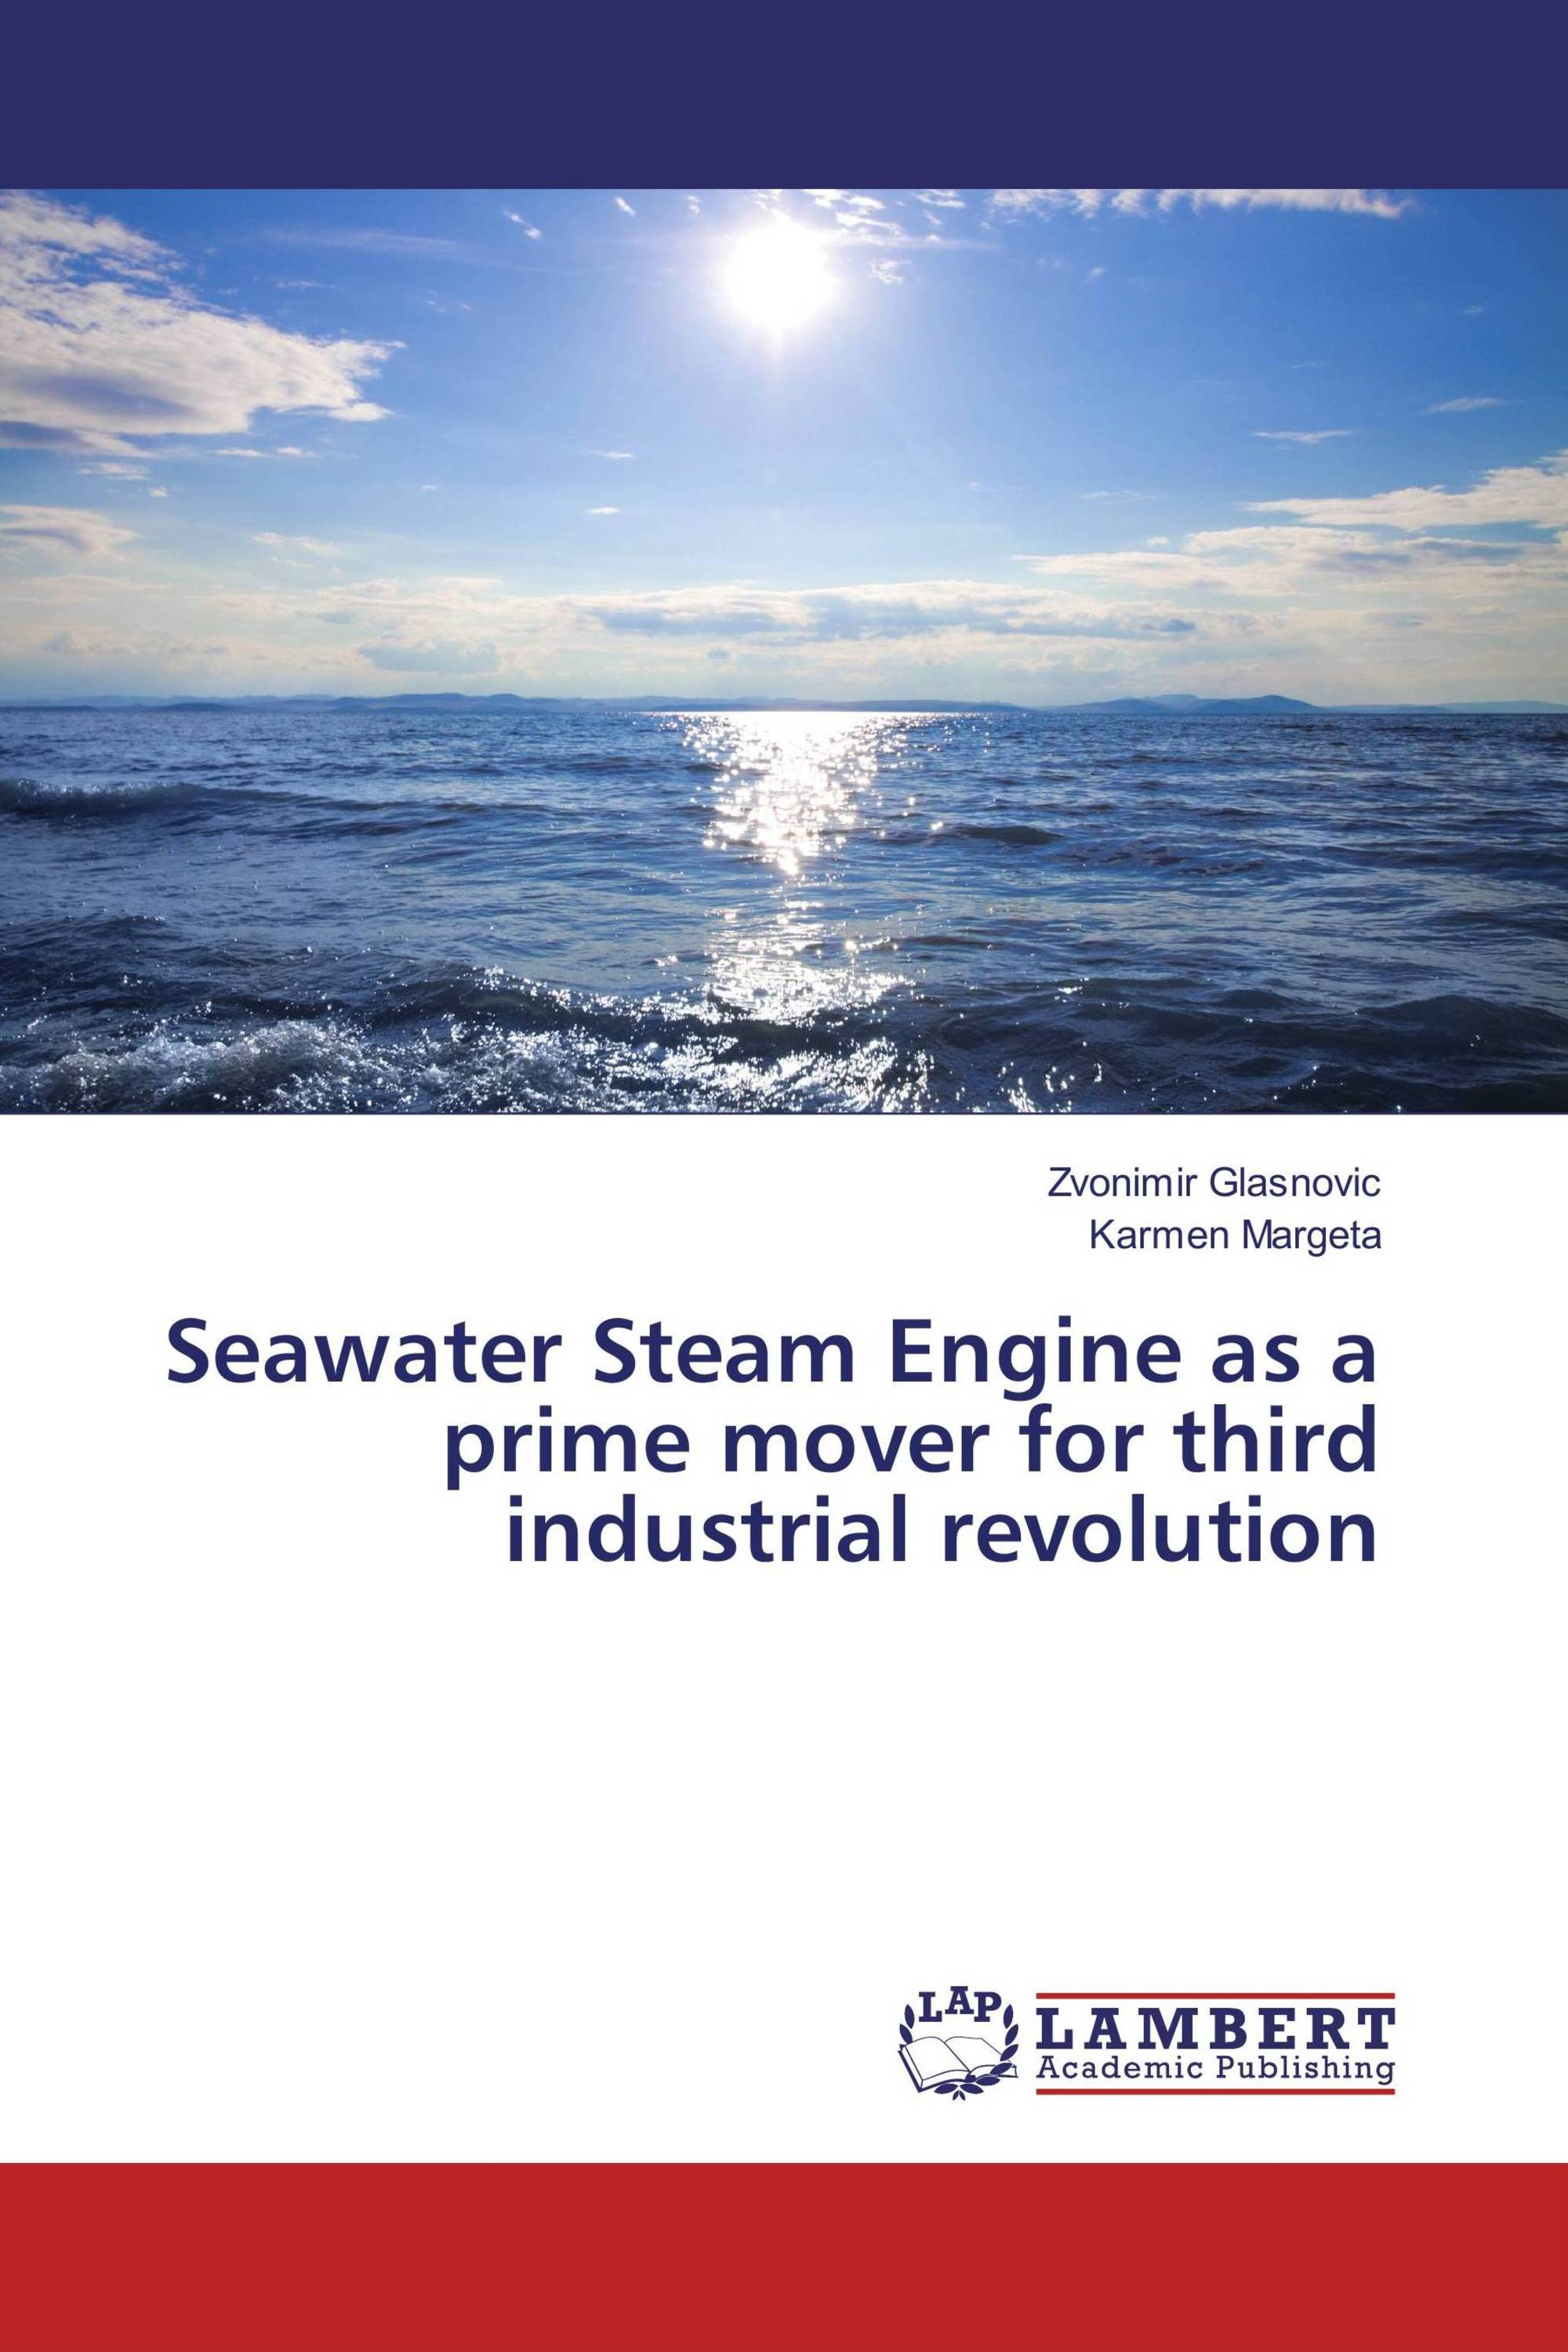 Seawater Steam Engine as a prime mover for third industrial revolution